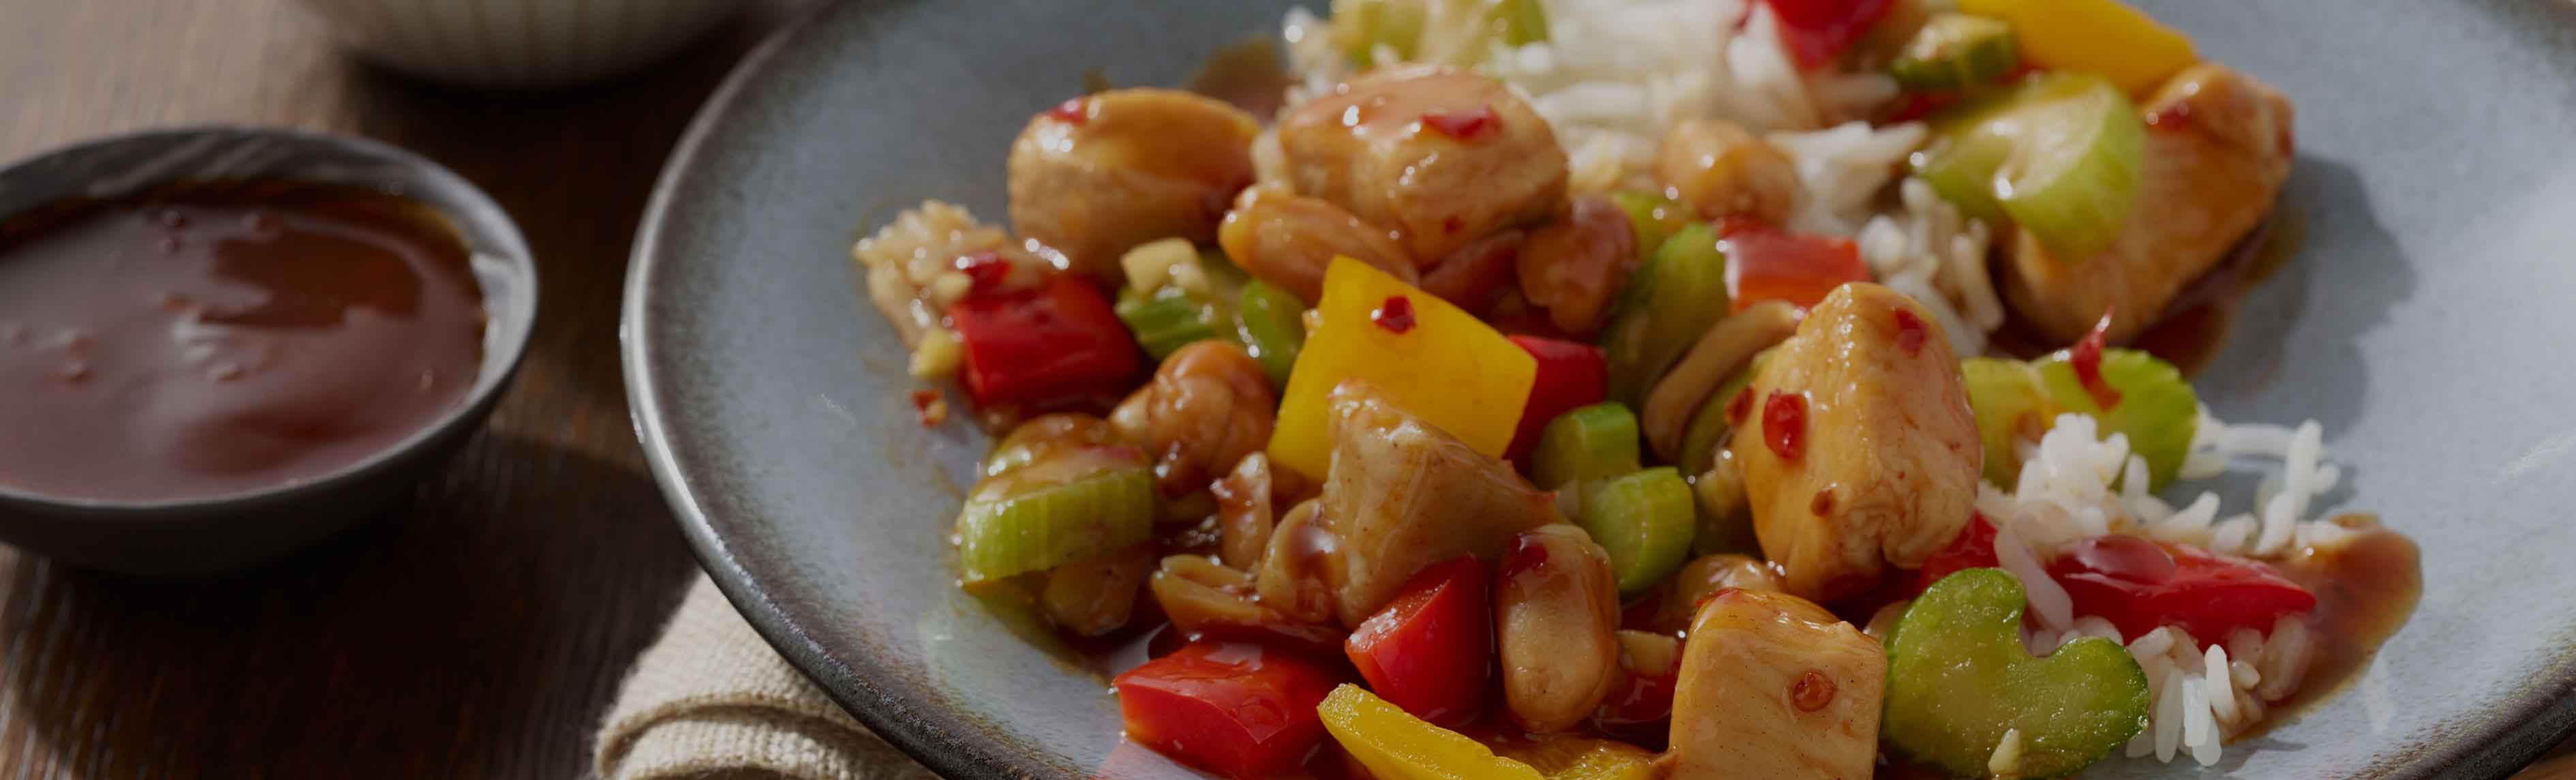 PF Changs Kung Pao Chicken